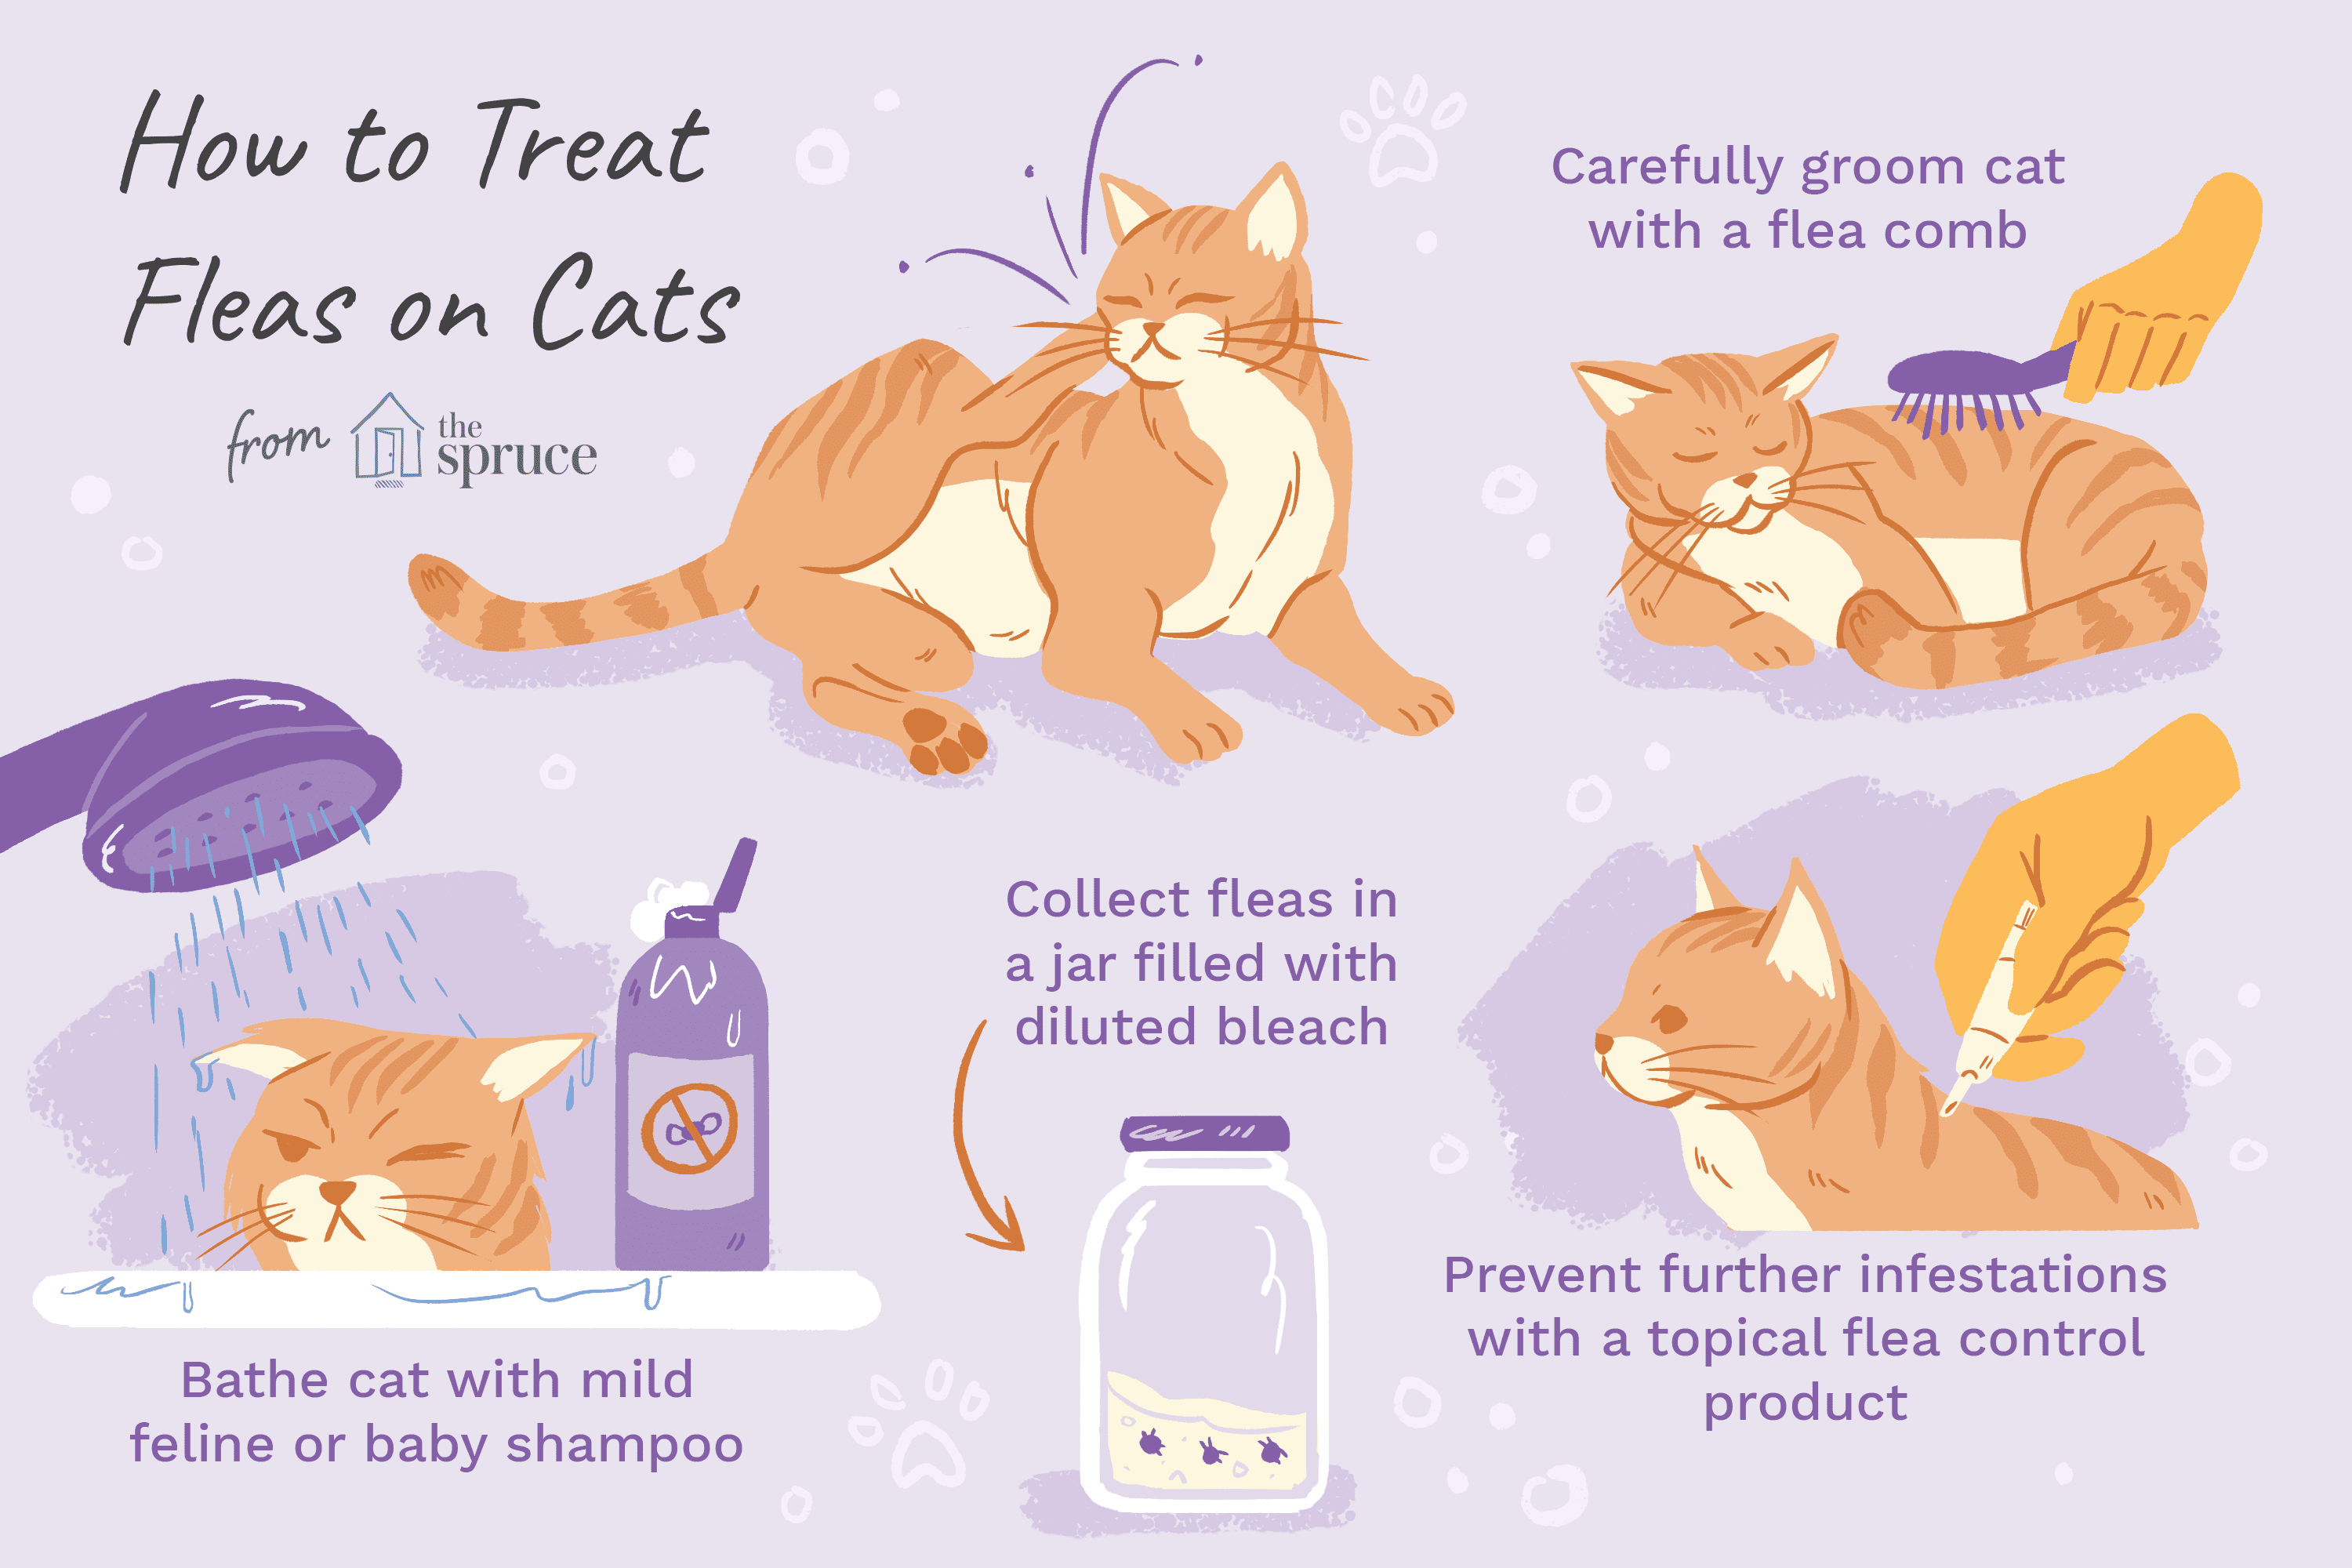 illustration of how to treat fleas on cats